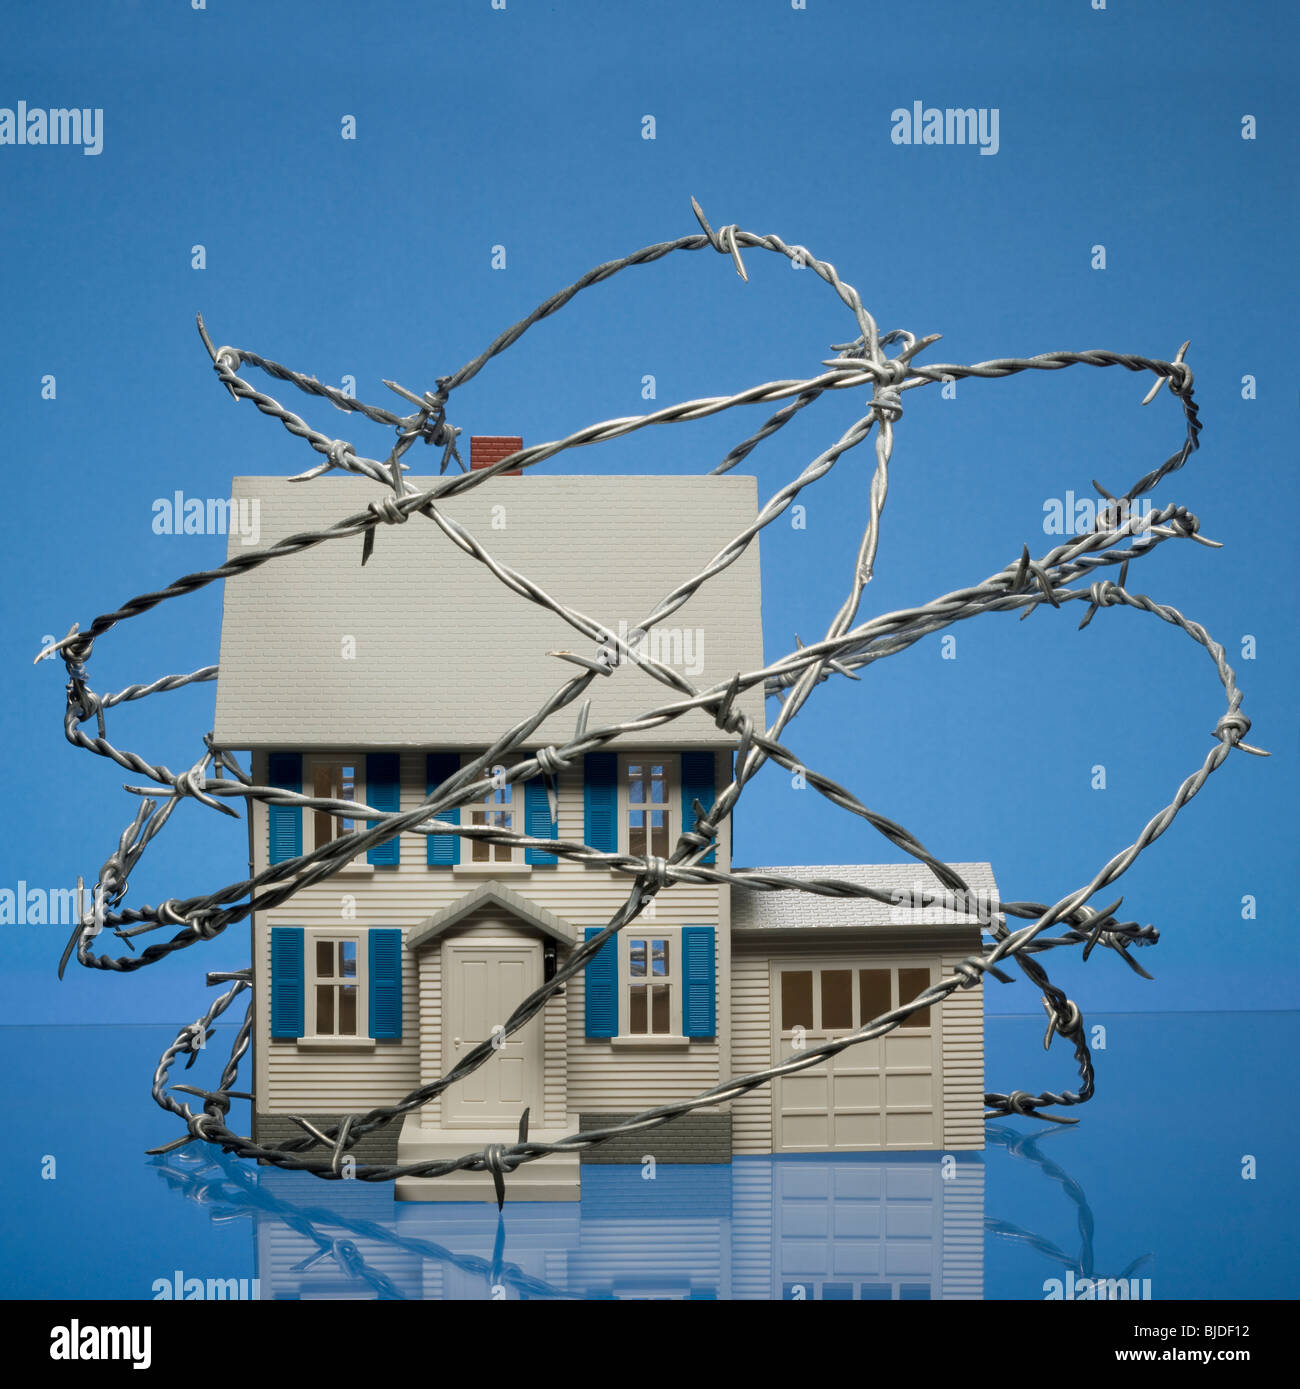 Home surrounded by barbed wire. - Stock Image